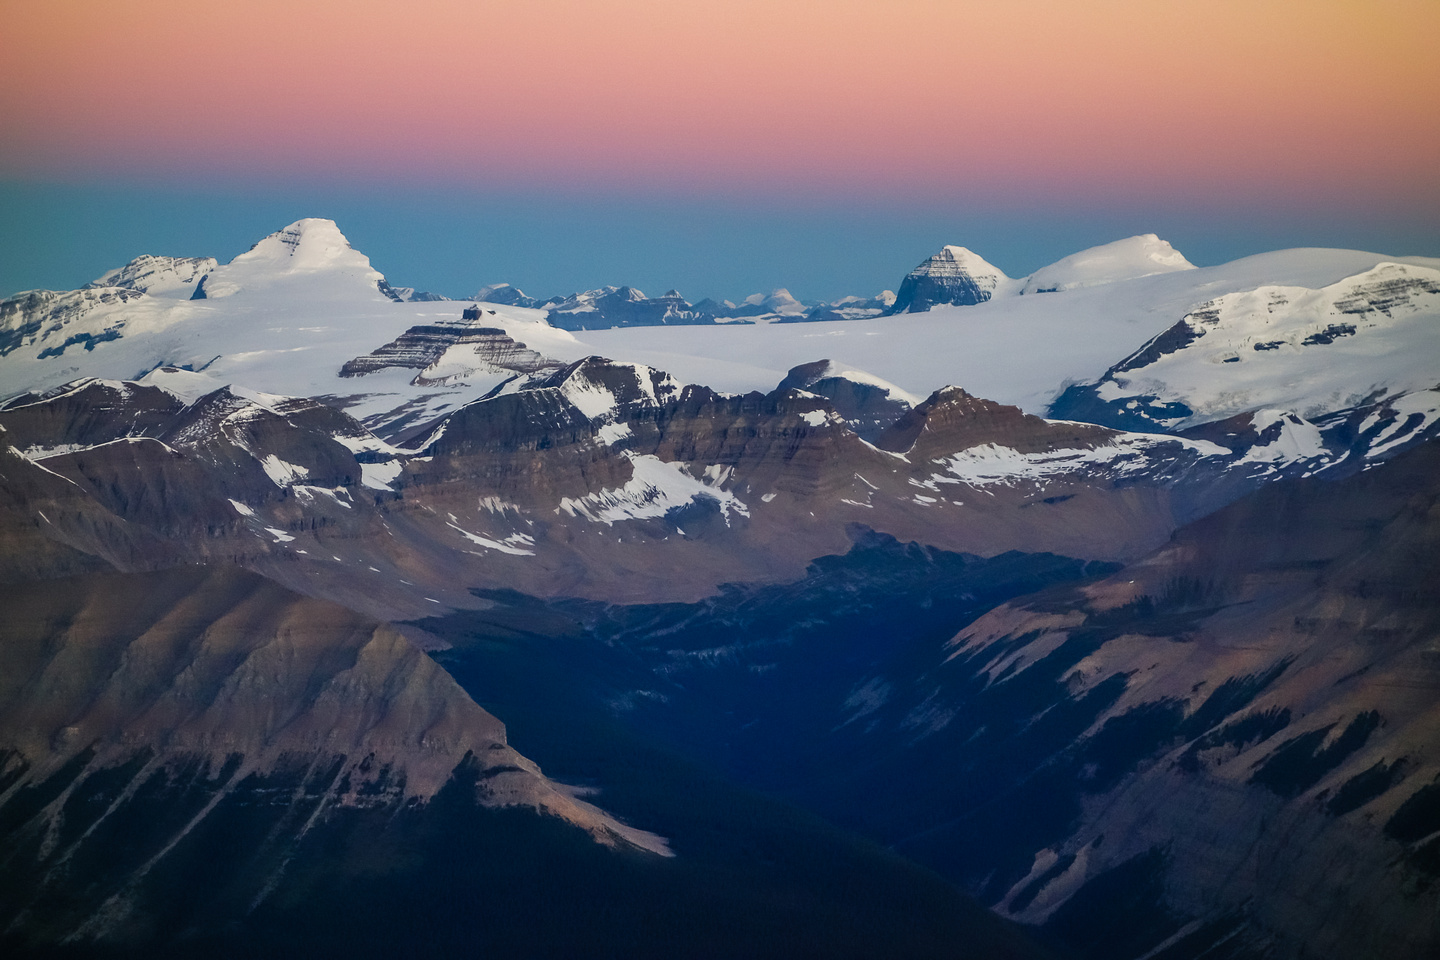 Just before sunrise - a view off the summit ridge towards the Columbia Icefields.